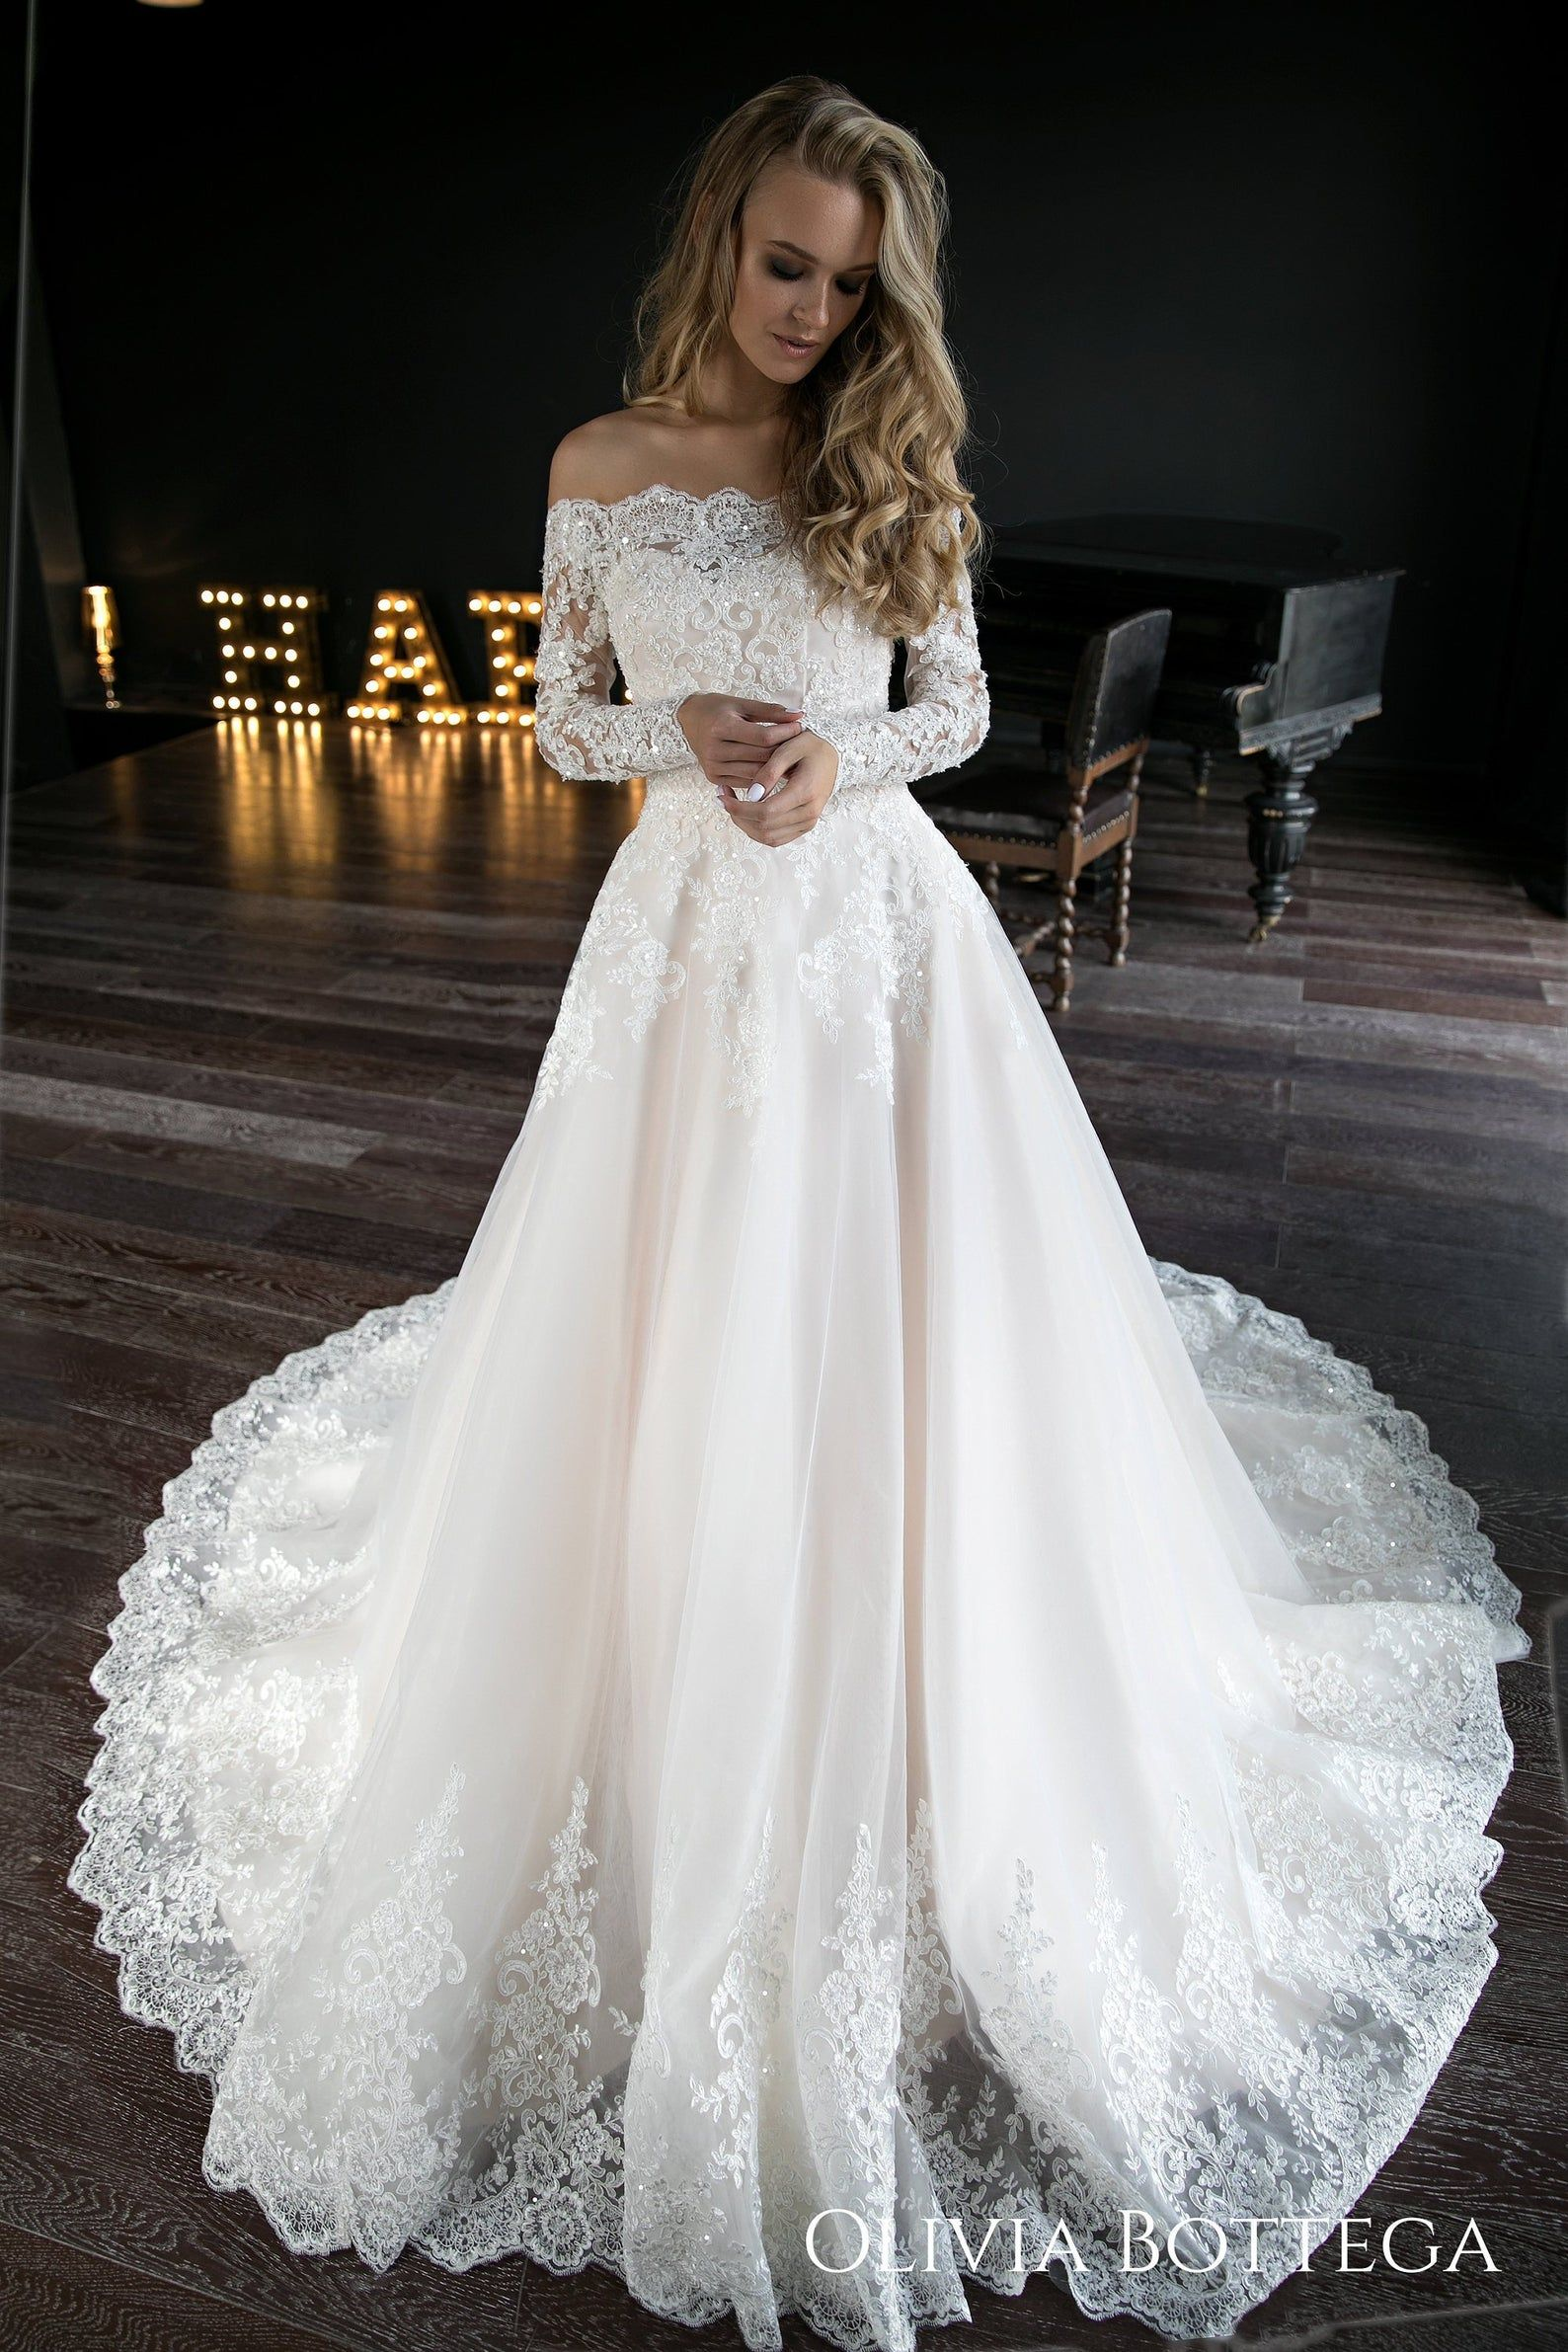 Lace Wedding Dresses 2020 New 715 White Lace Babydoll Dress Tweed Dress Long Sleeve Lace Homecoming Dress Mermaid Style Wedding Dress Plus Size Dresses To Wear To A Wedding Knee Length Lace Dress